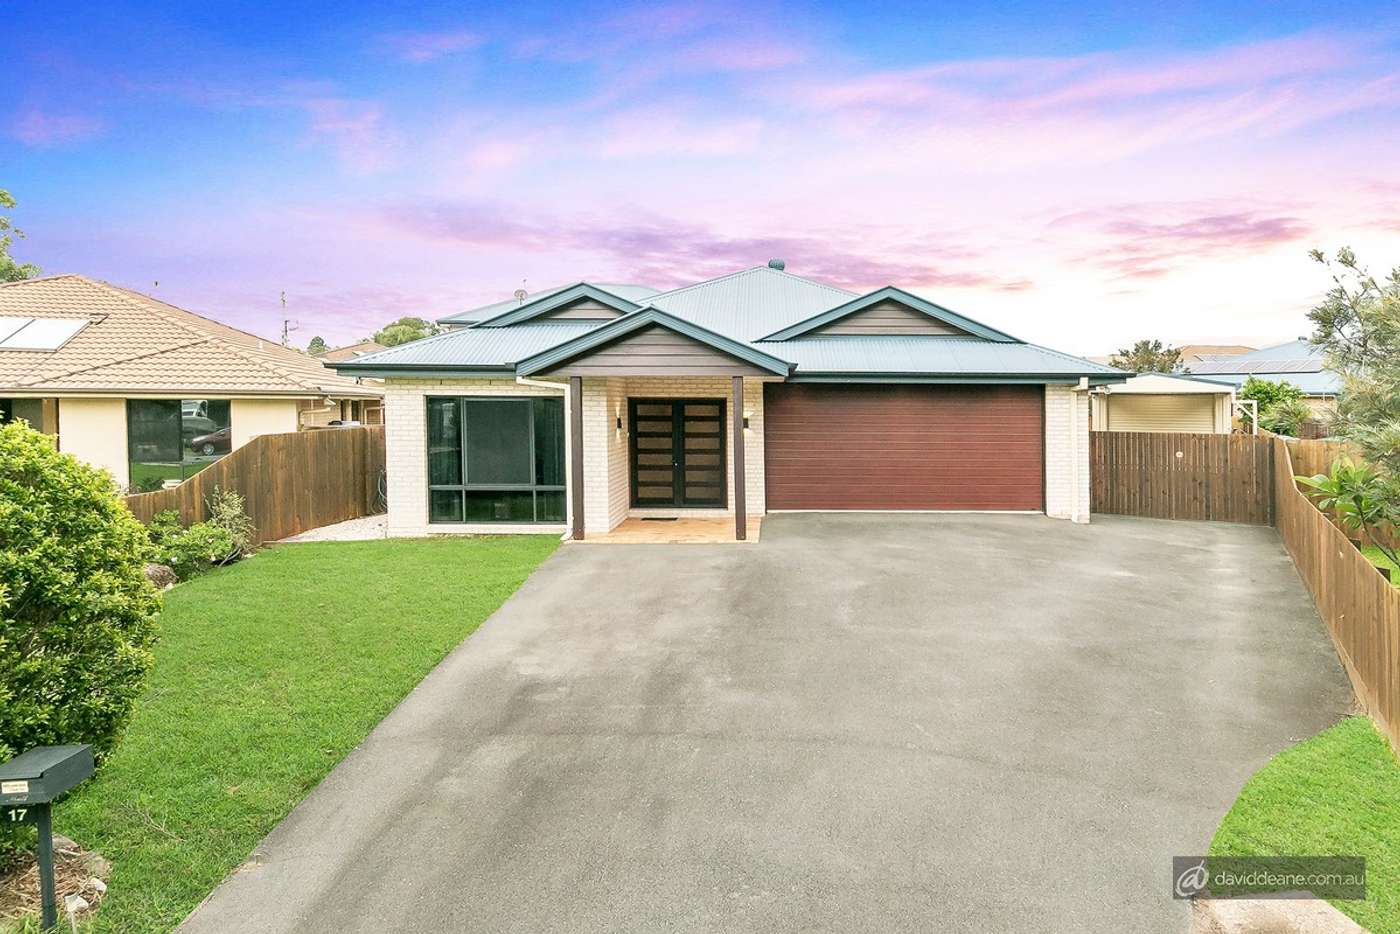 Main view of Homely house listing, 17 April Court, Joyner QLD 4500